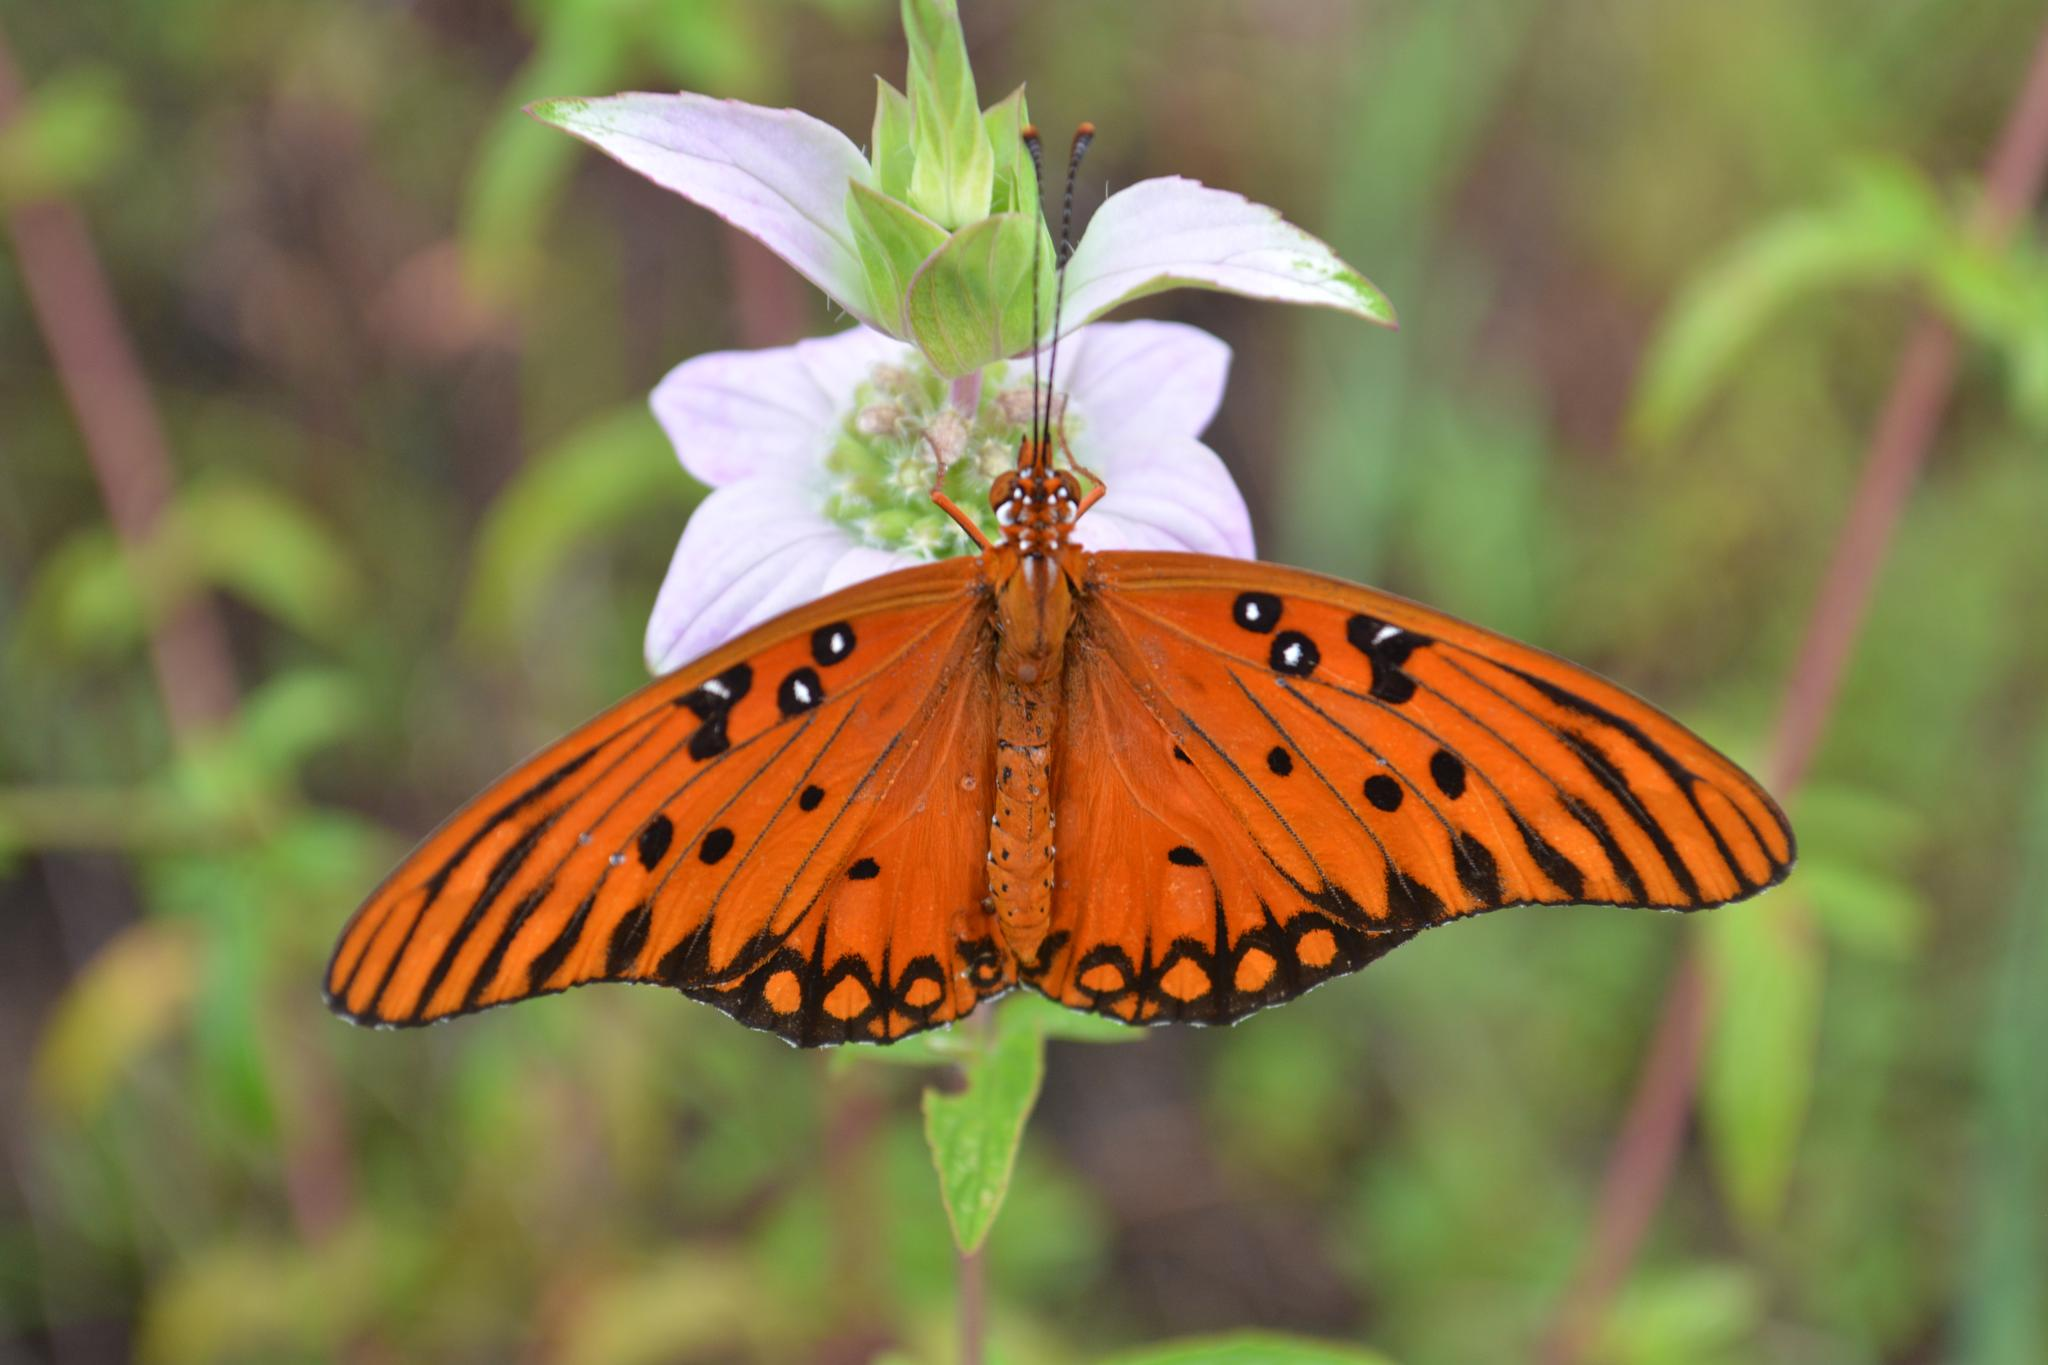 Fritillary butterfly on wild flower by rayzicakes